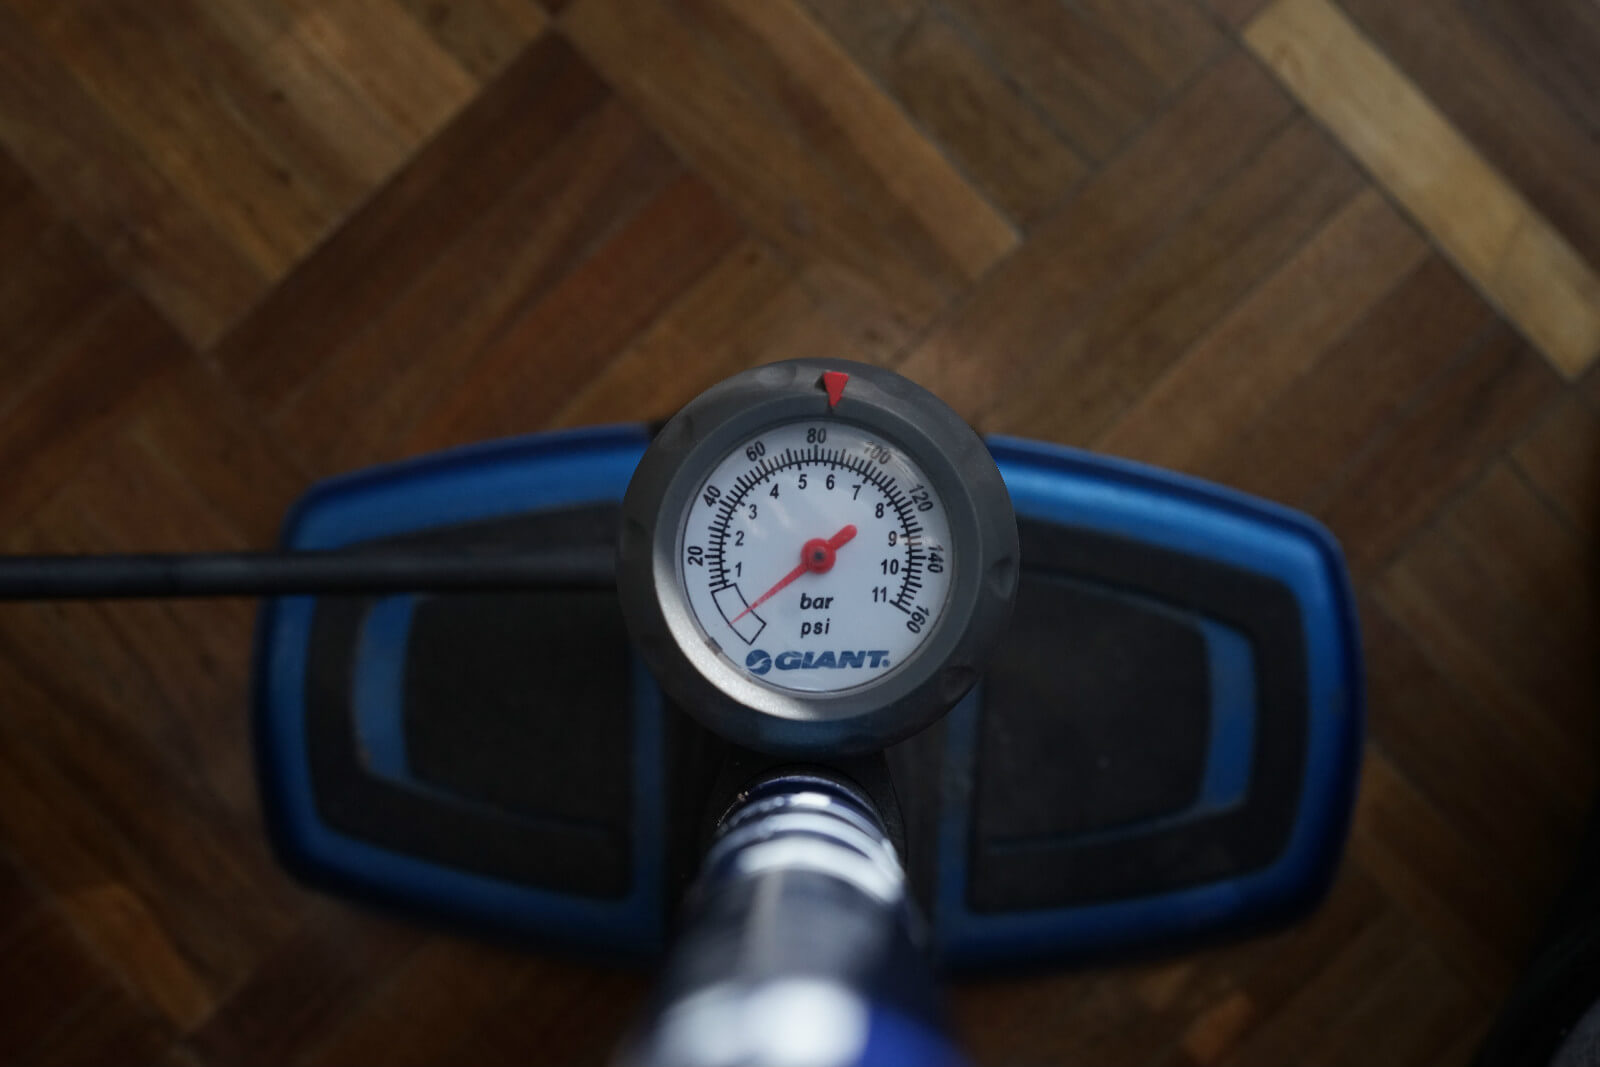 The track pump measures pressure in psi and bar